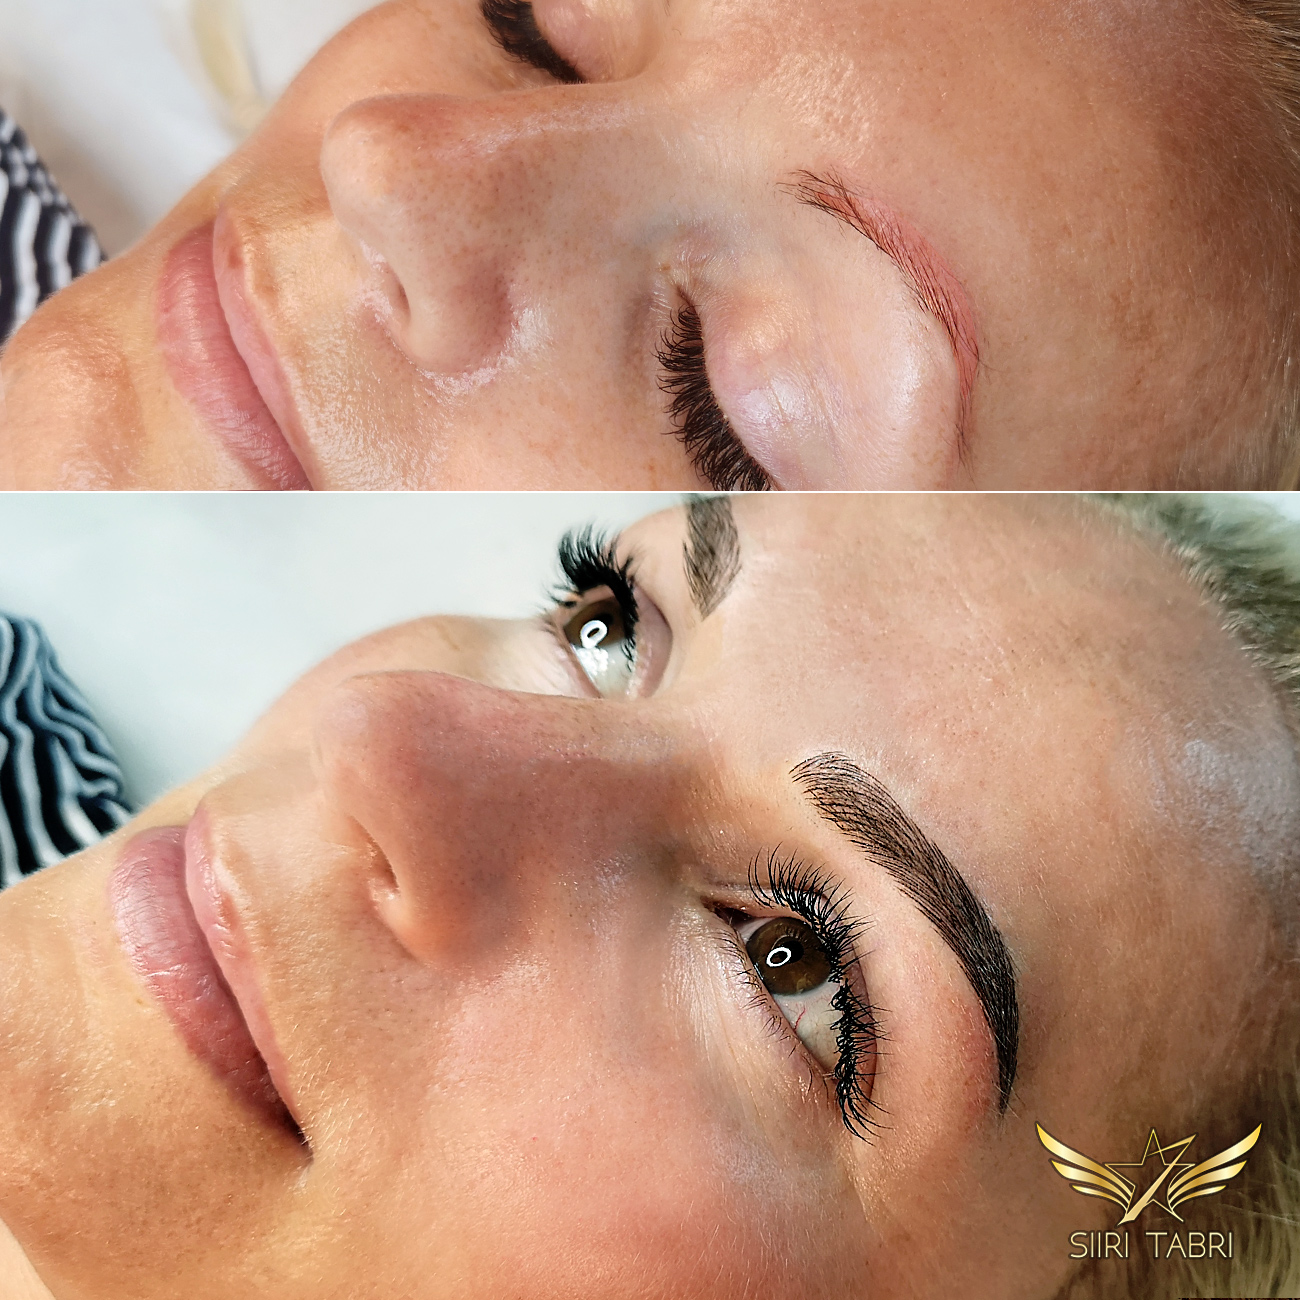 Light microblading. A sample from the master Siiri Tabri herself. Incredible transformation.